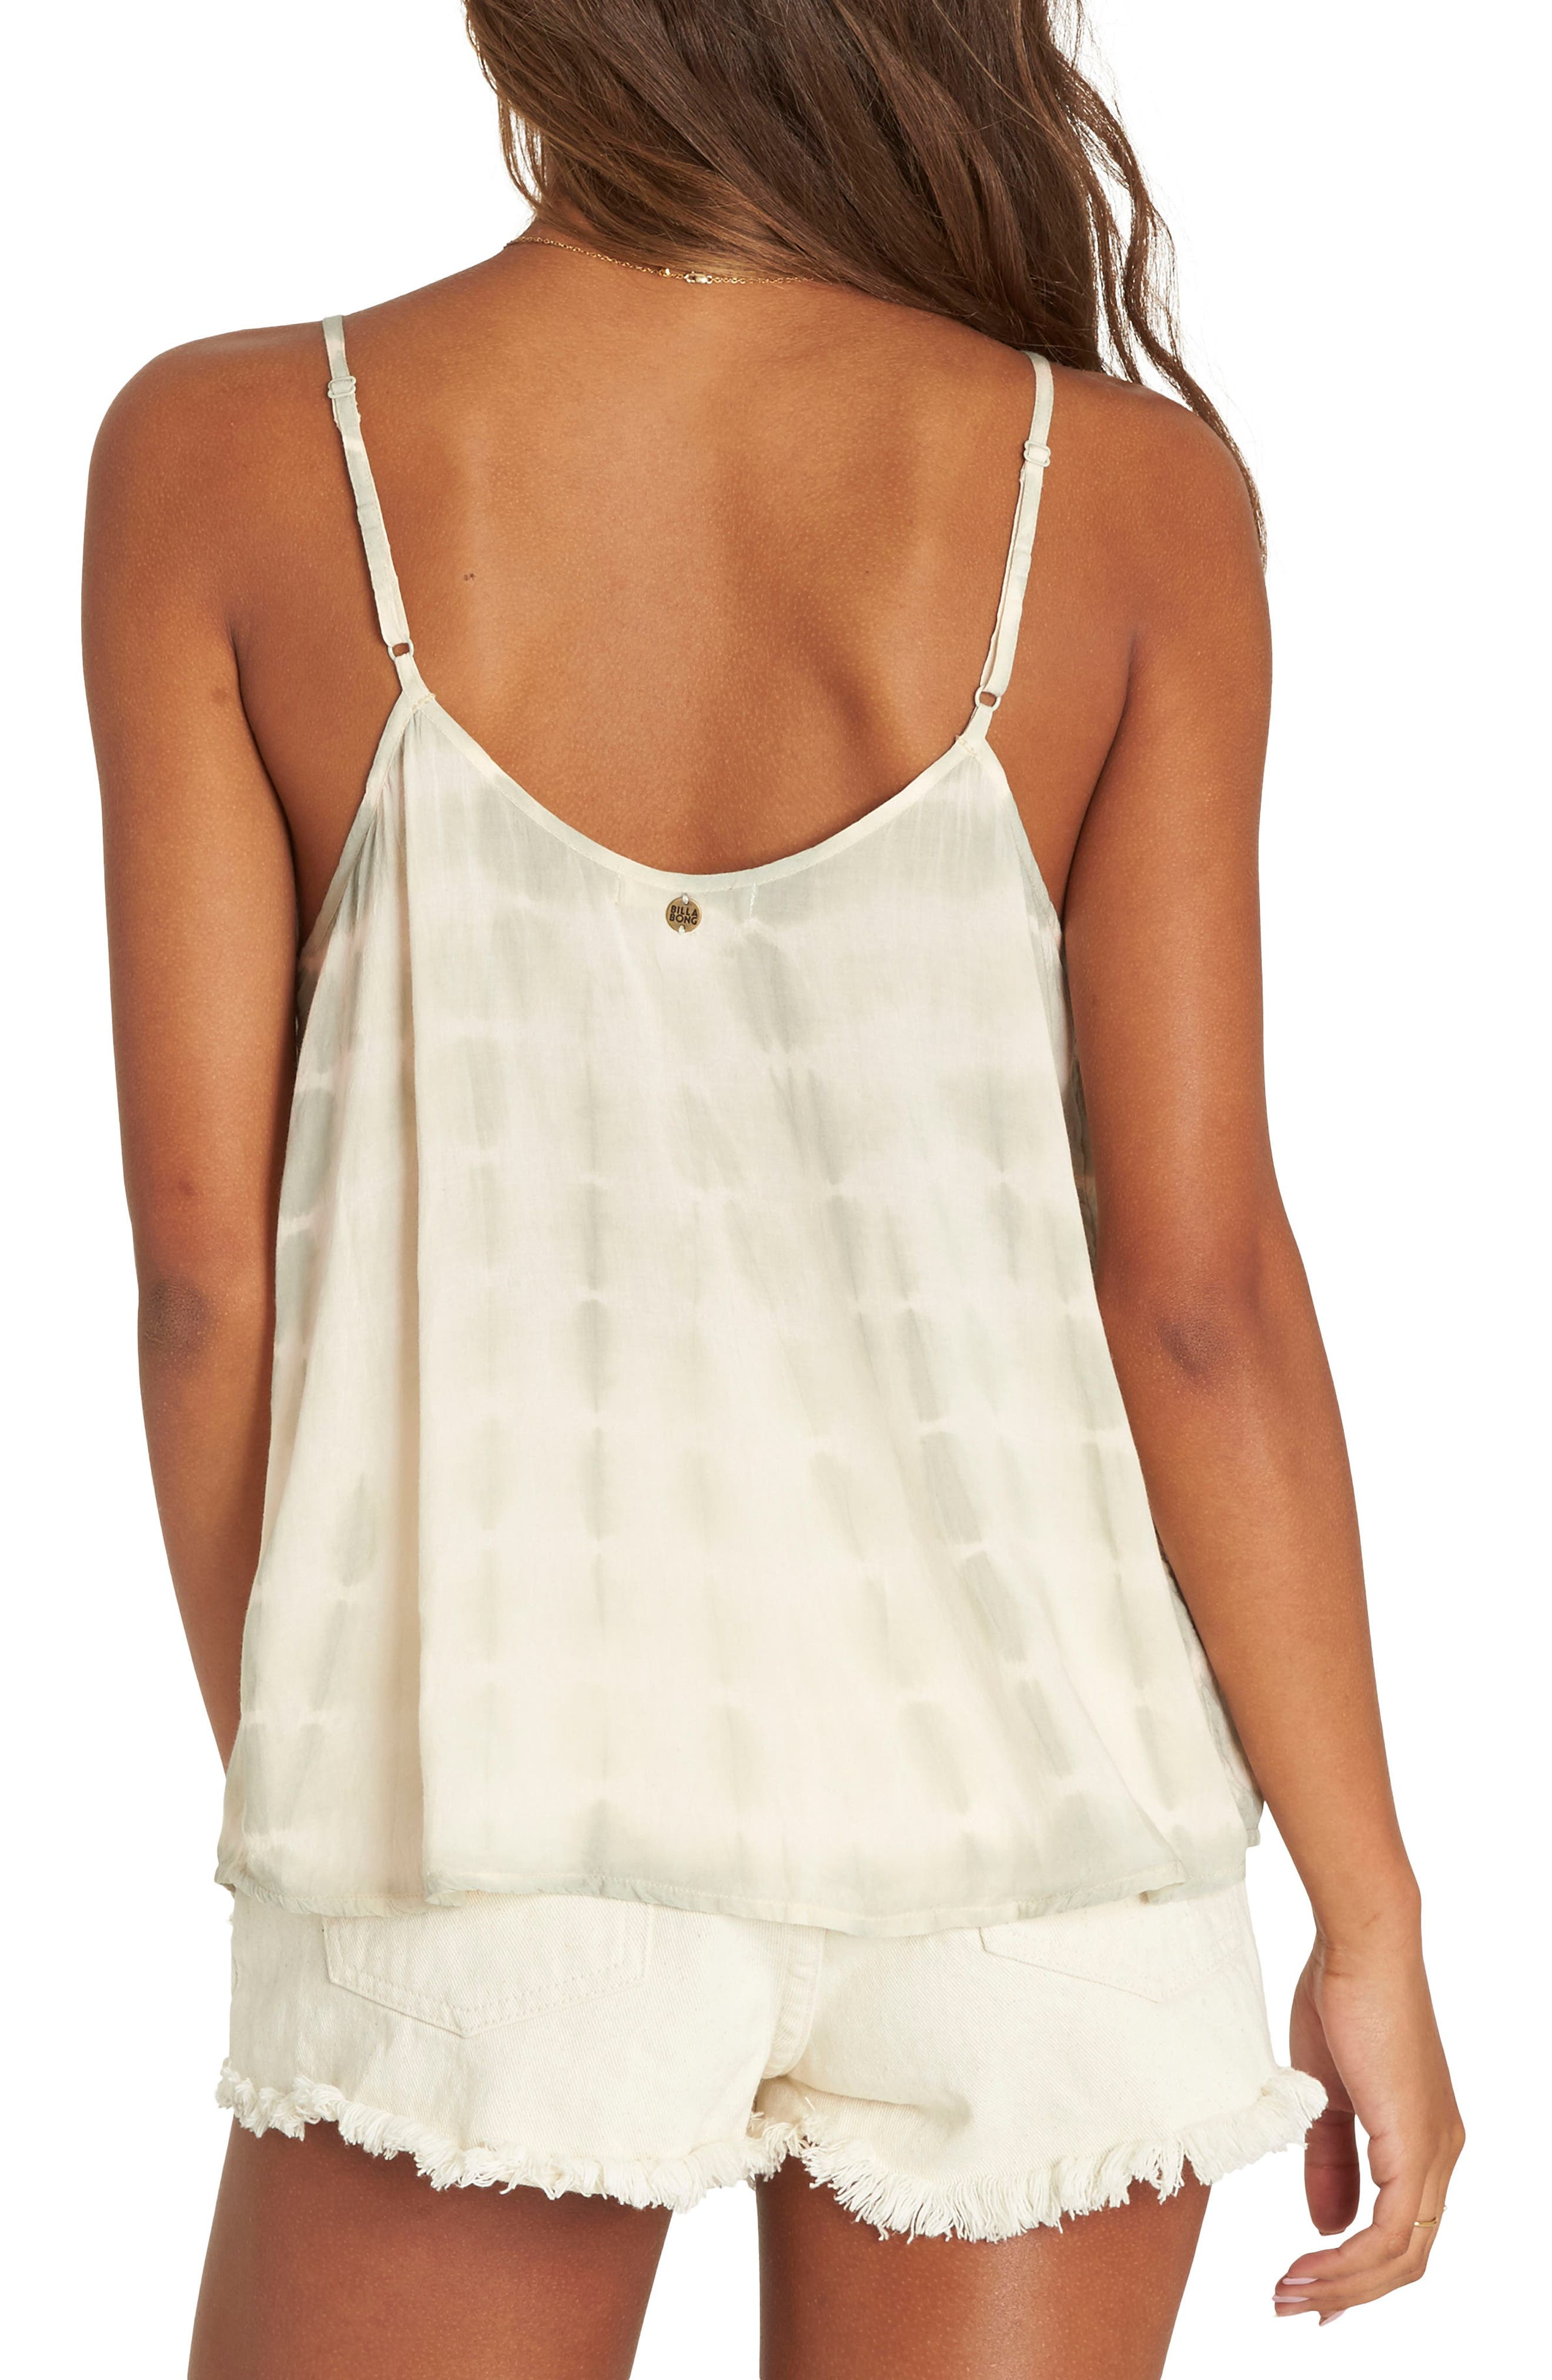 Illusions of Tie Dye Lace-Up Tank,                             Alternate thumbnail 2, color,                             310